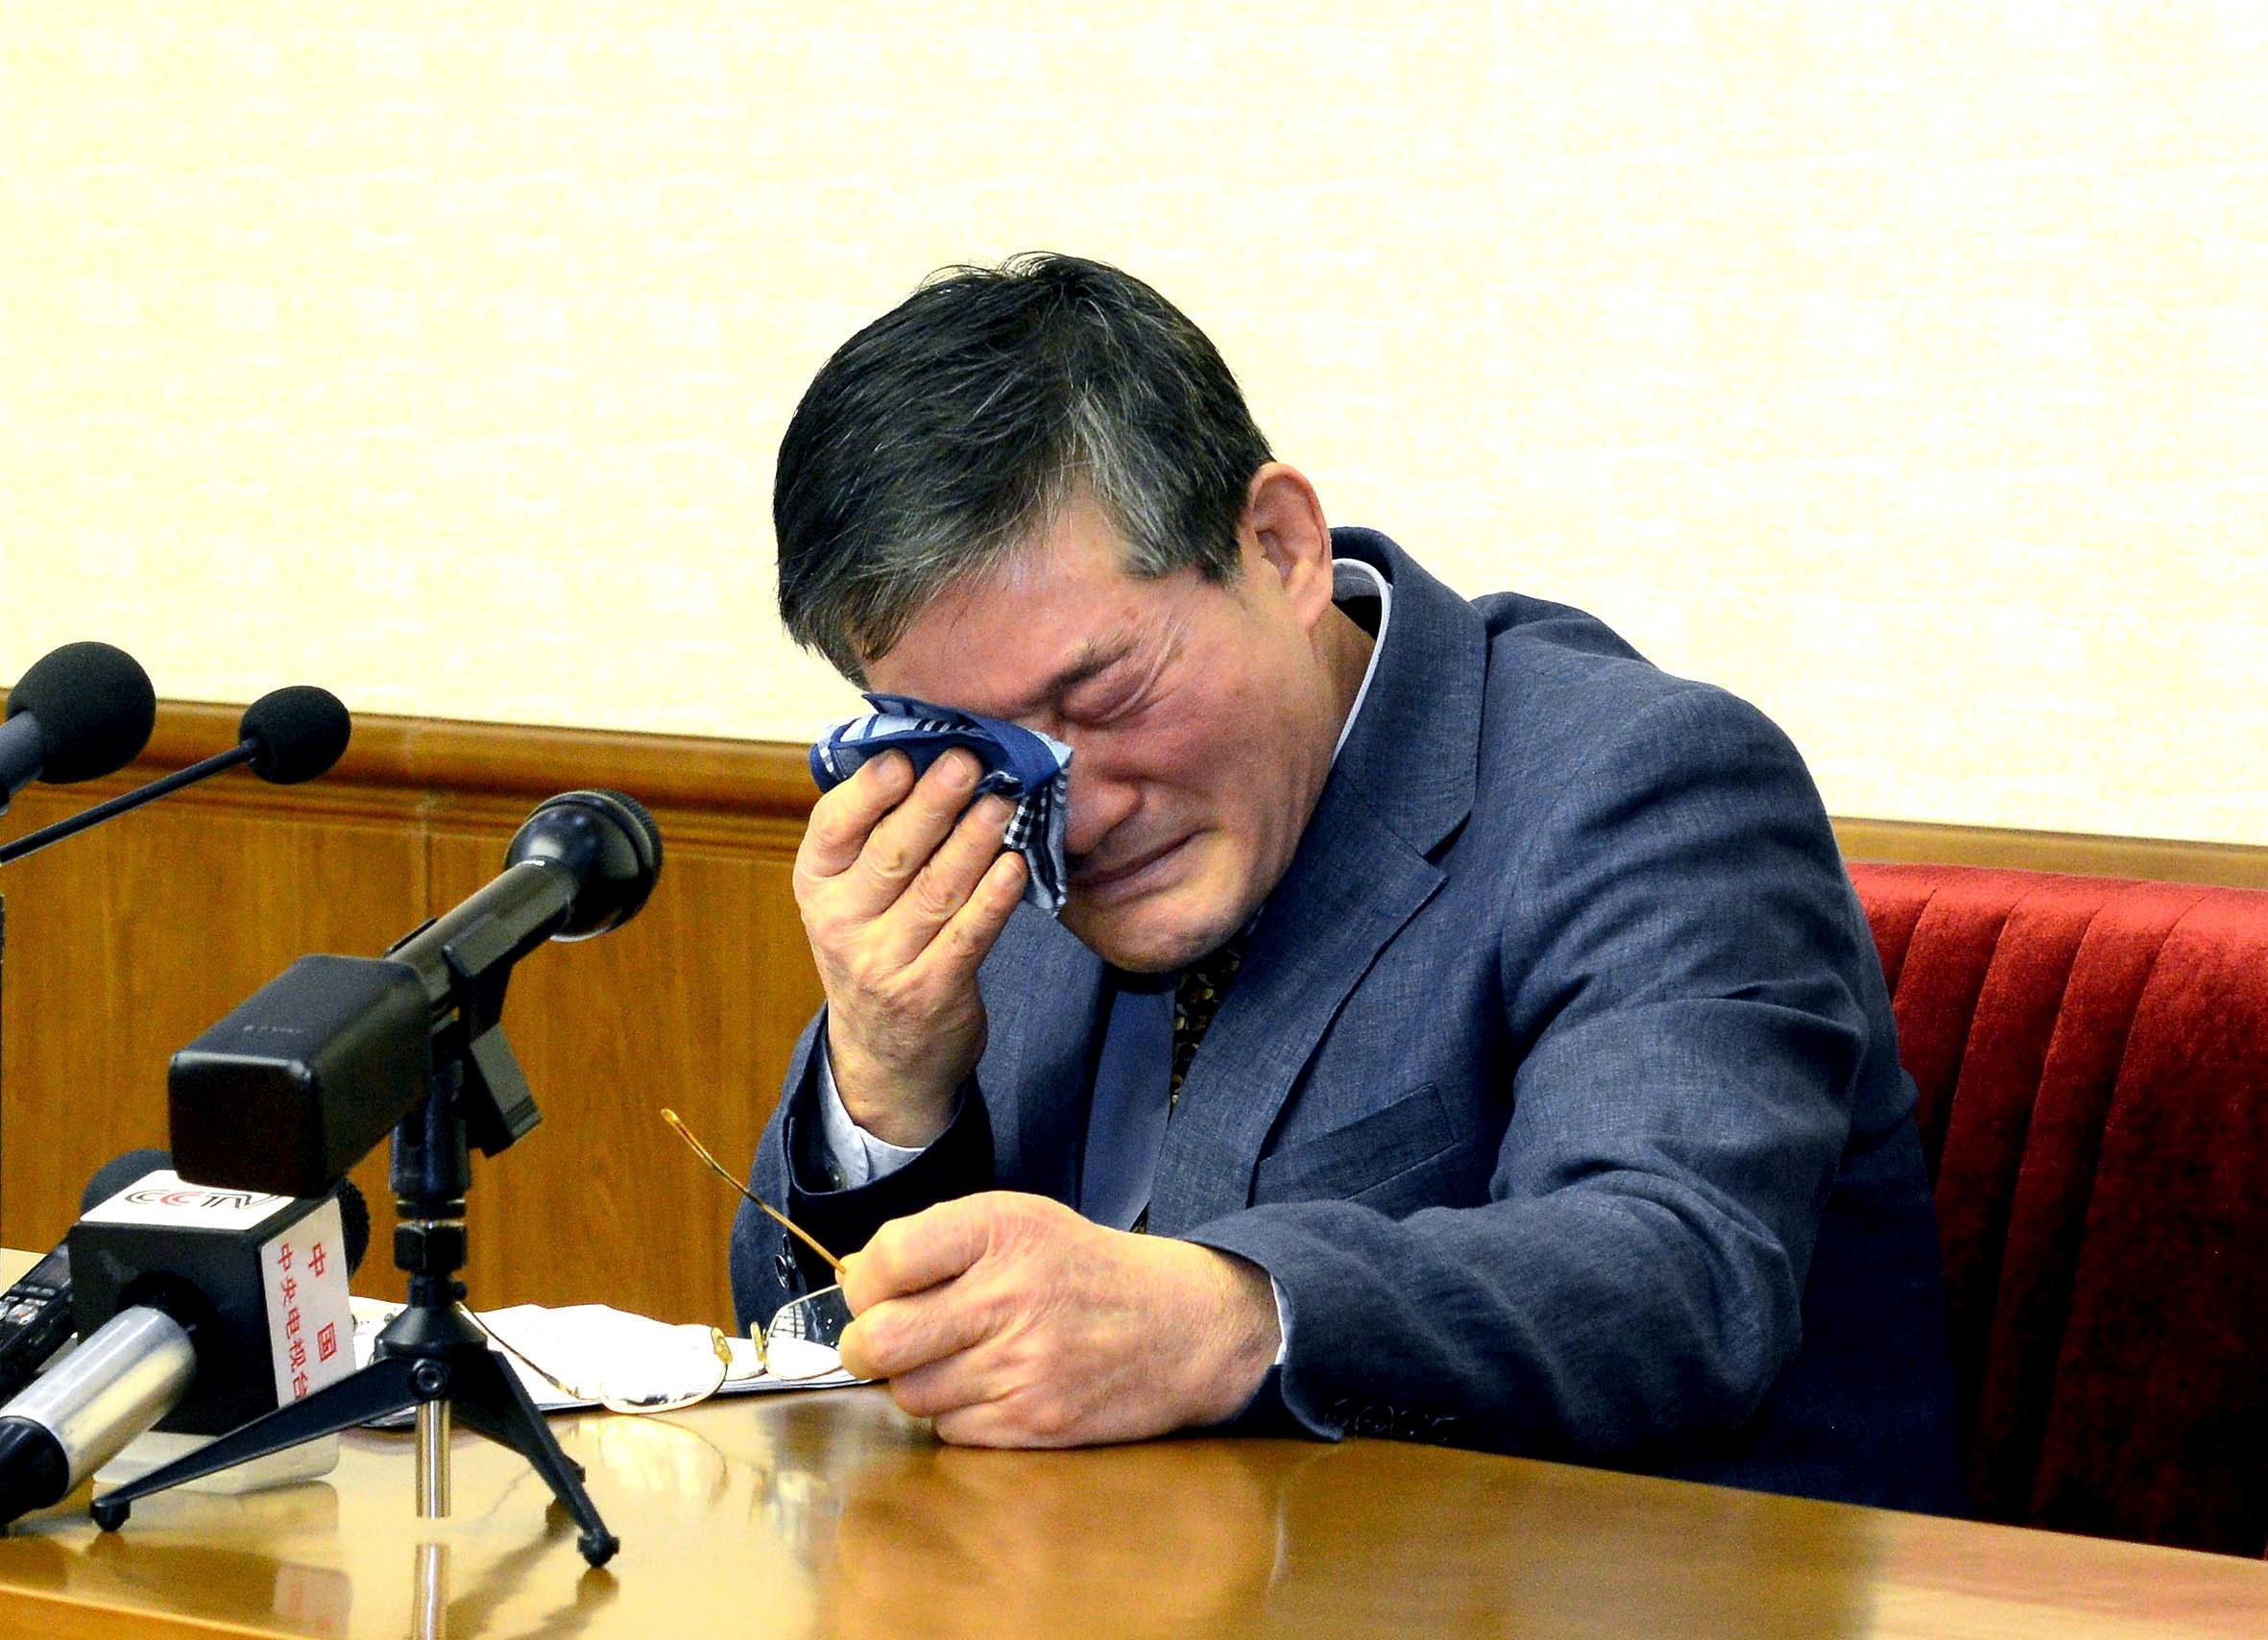 A man who identified himself as Kim Dong-chul attends a news conference in Pyongyang in this undated photo released by North